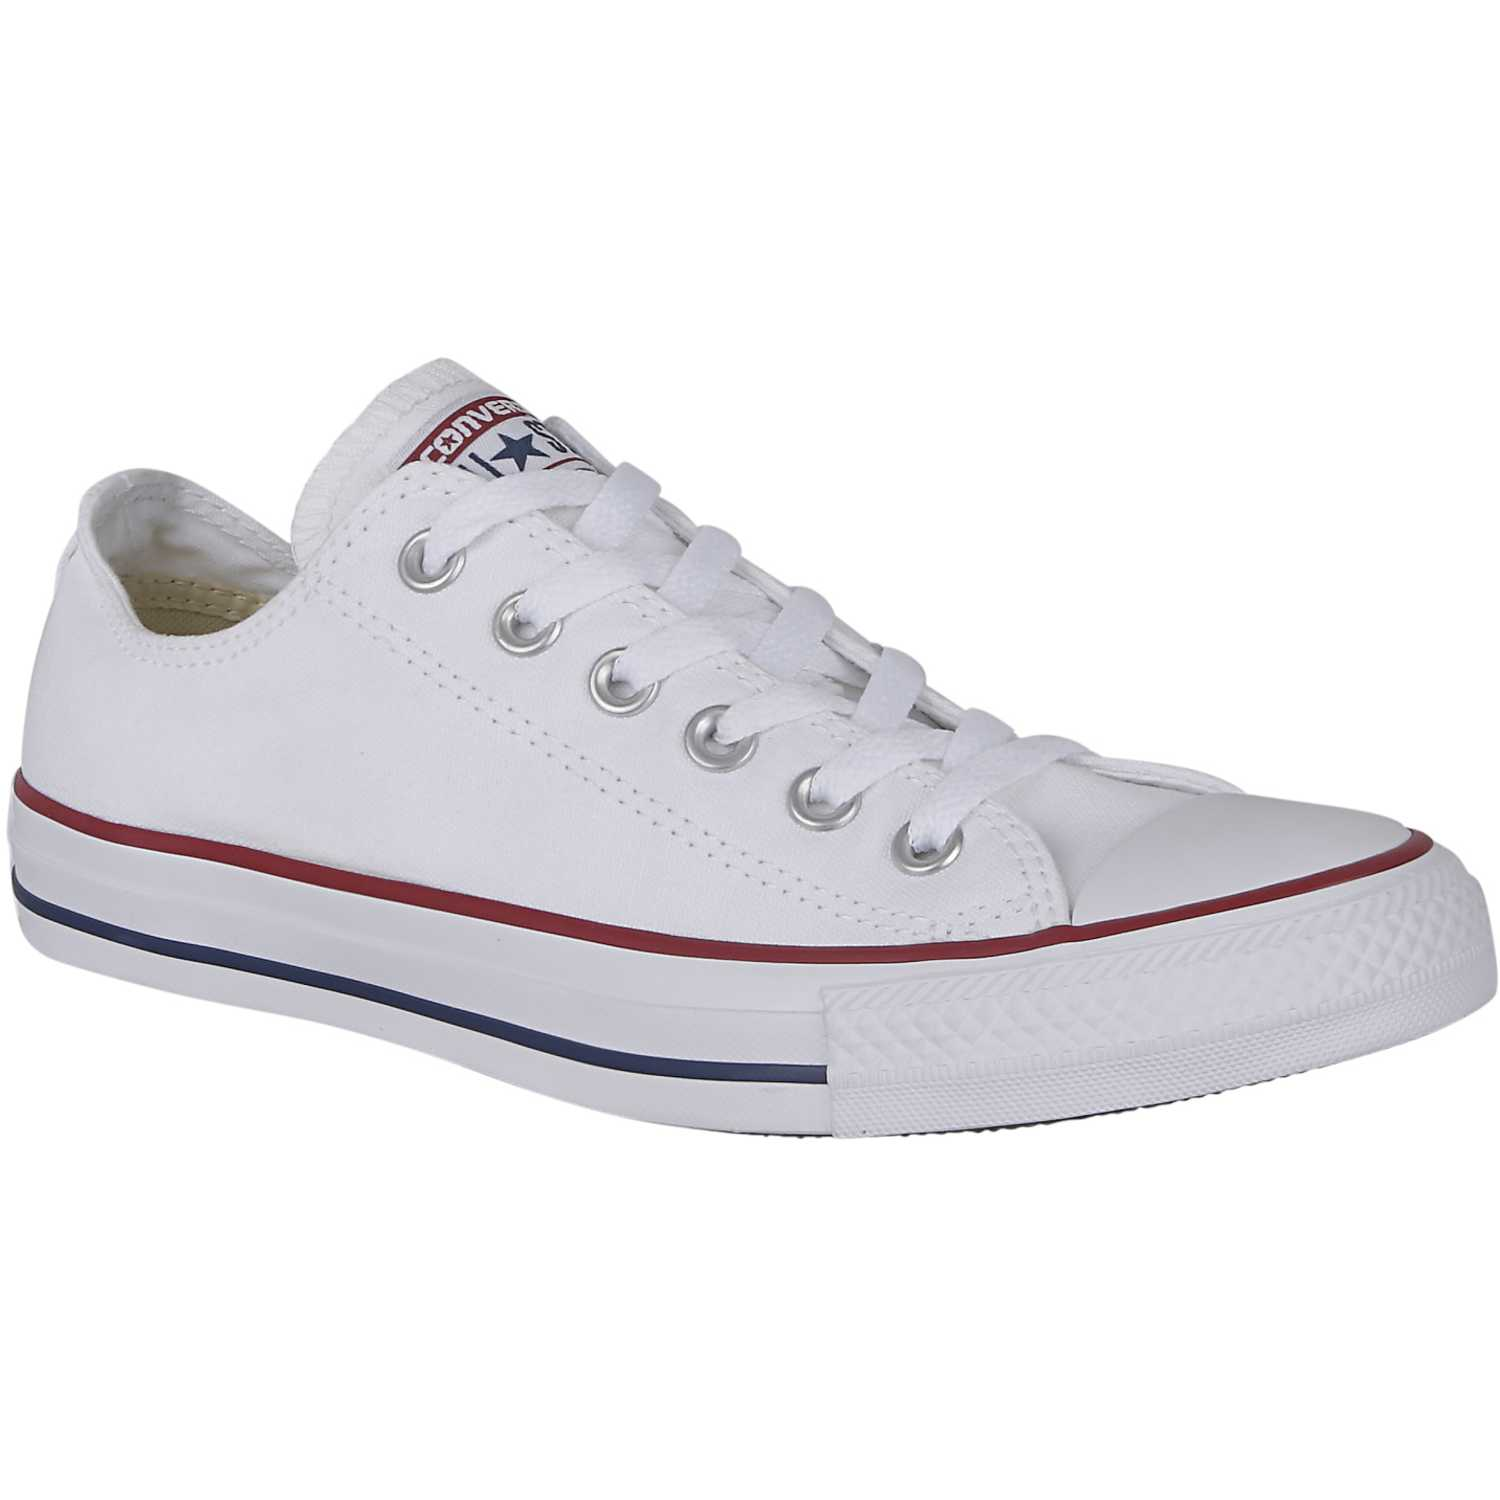 a88c2b732a9 Zapatilla de Jovencita Converse Blanco ct as core ox